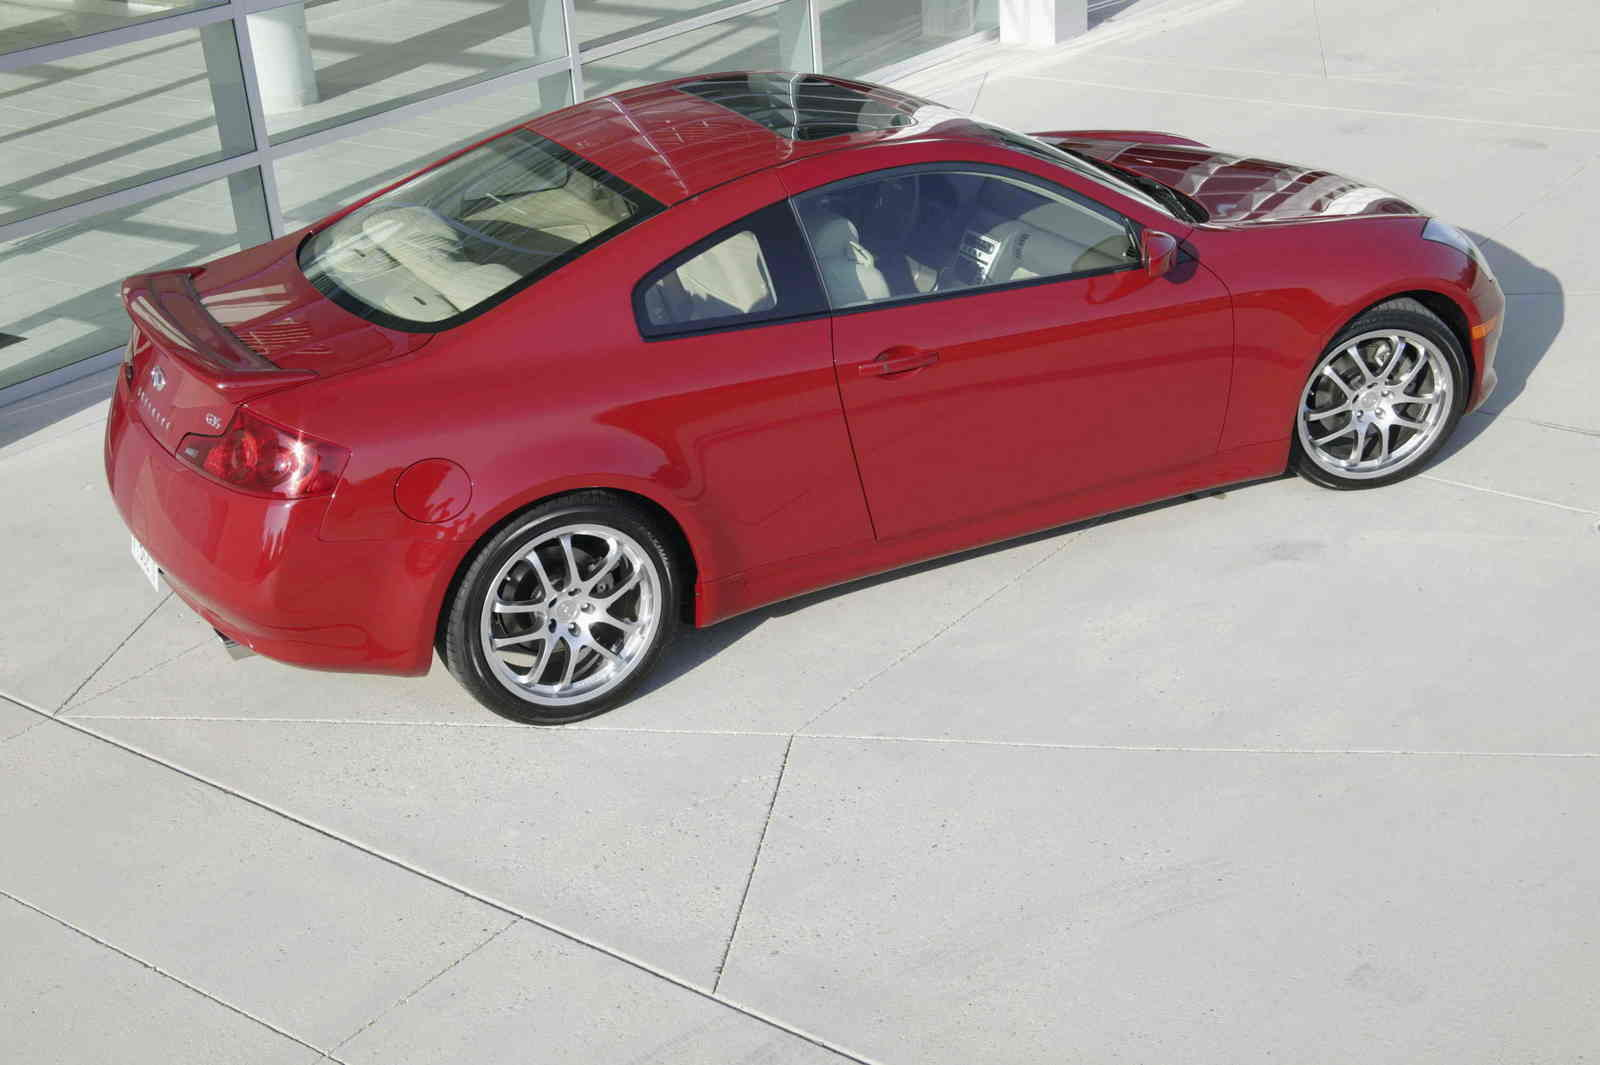 2006 infiniti g35 picture 65186 car review top speed. Black Bedroom Furniture Sets. Home Design Ideas